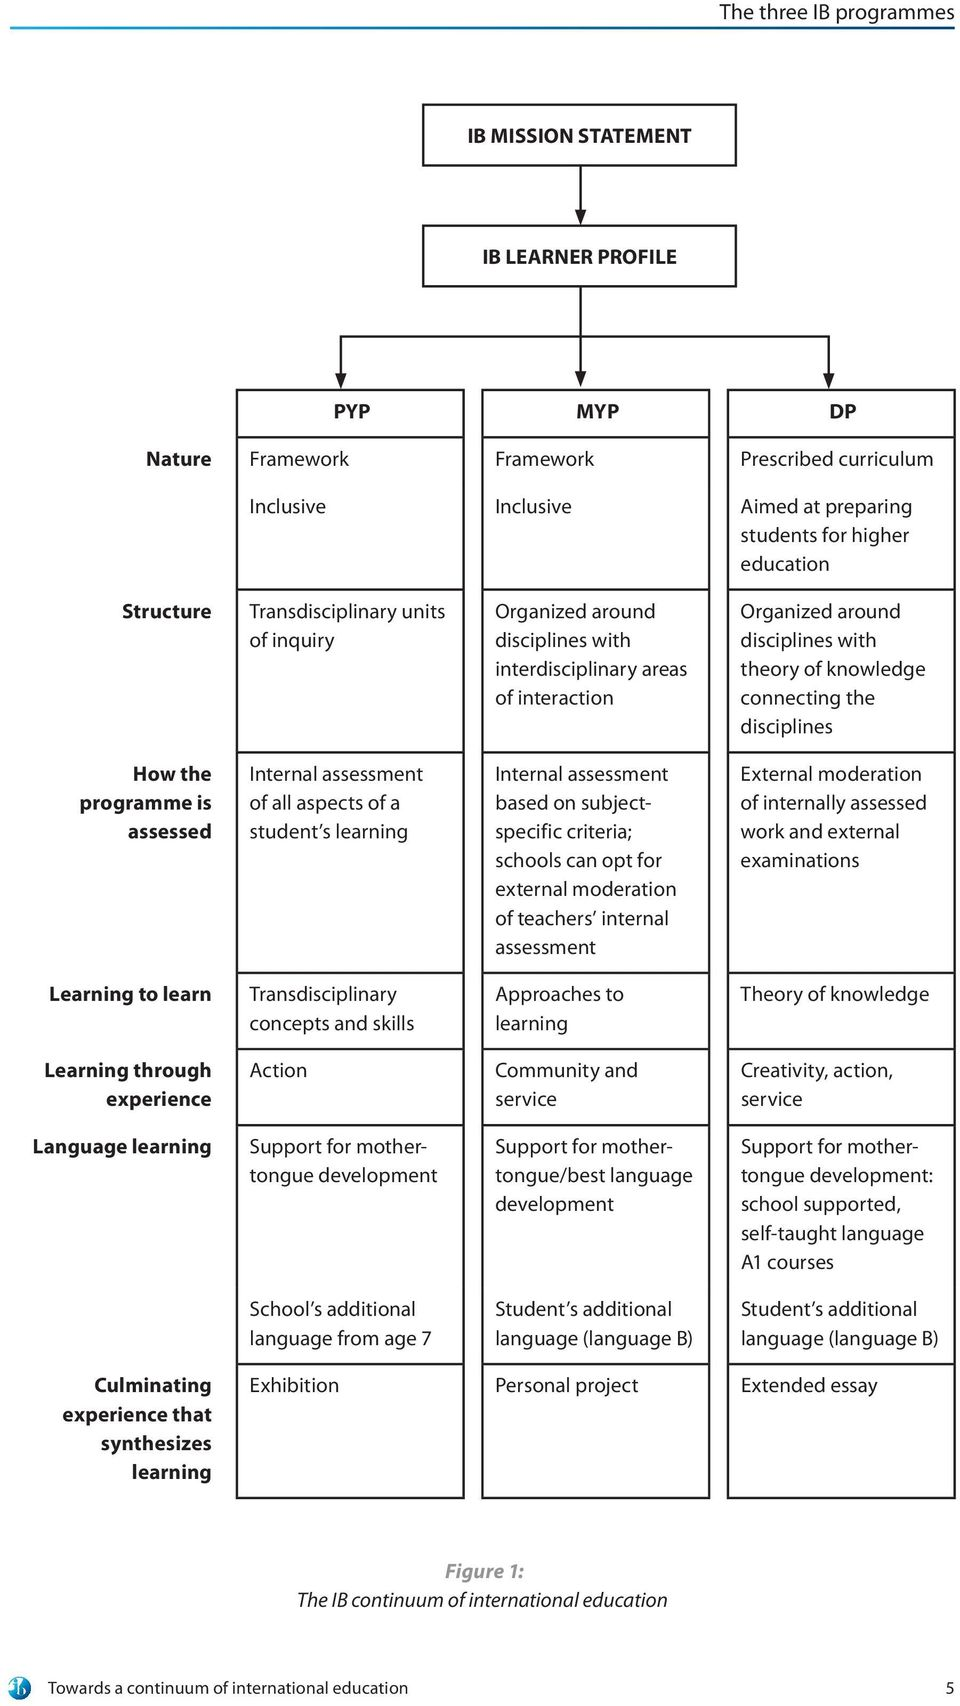 How the programme is assessed Internal assessment of all aspects of a student s learning Internal assessment based on subjectspecific criteria; schools can opt for external moderation of teachers